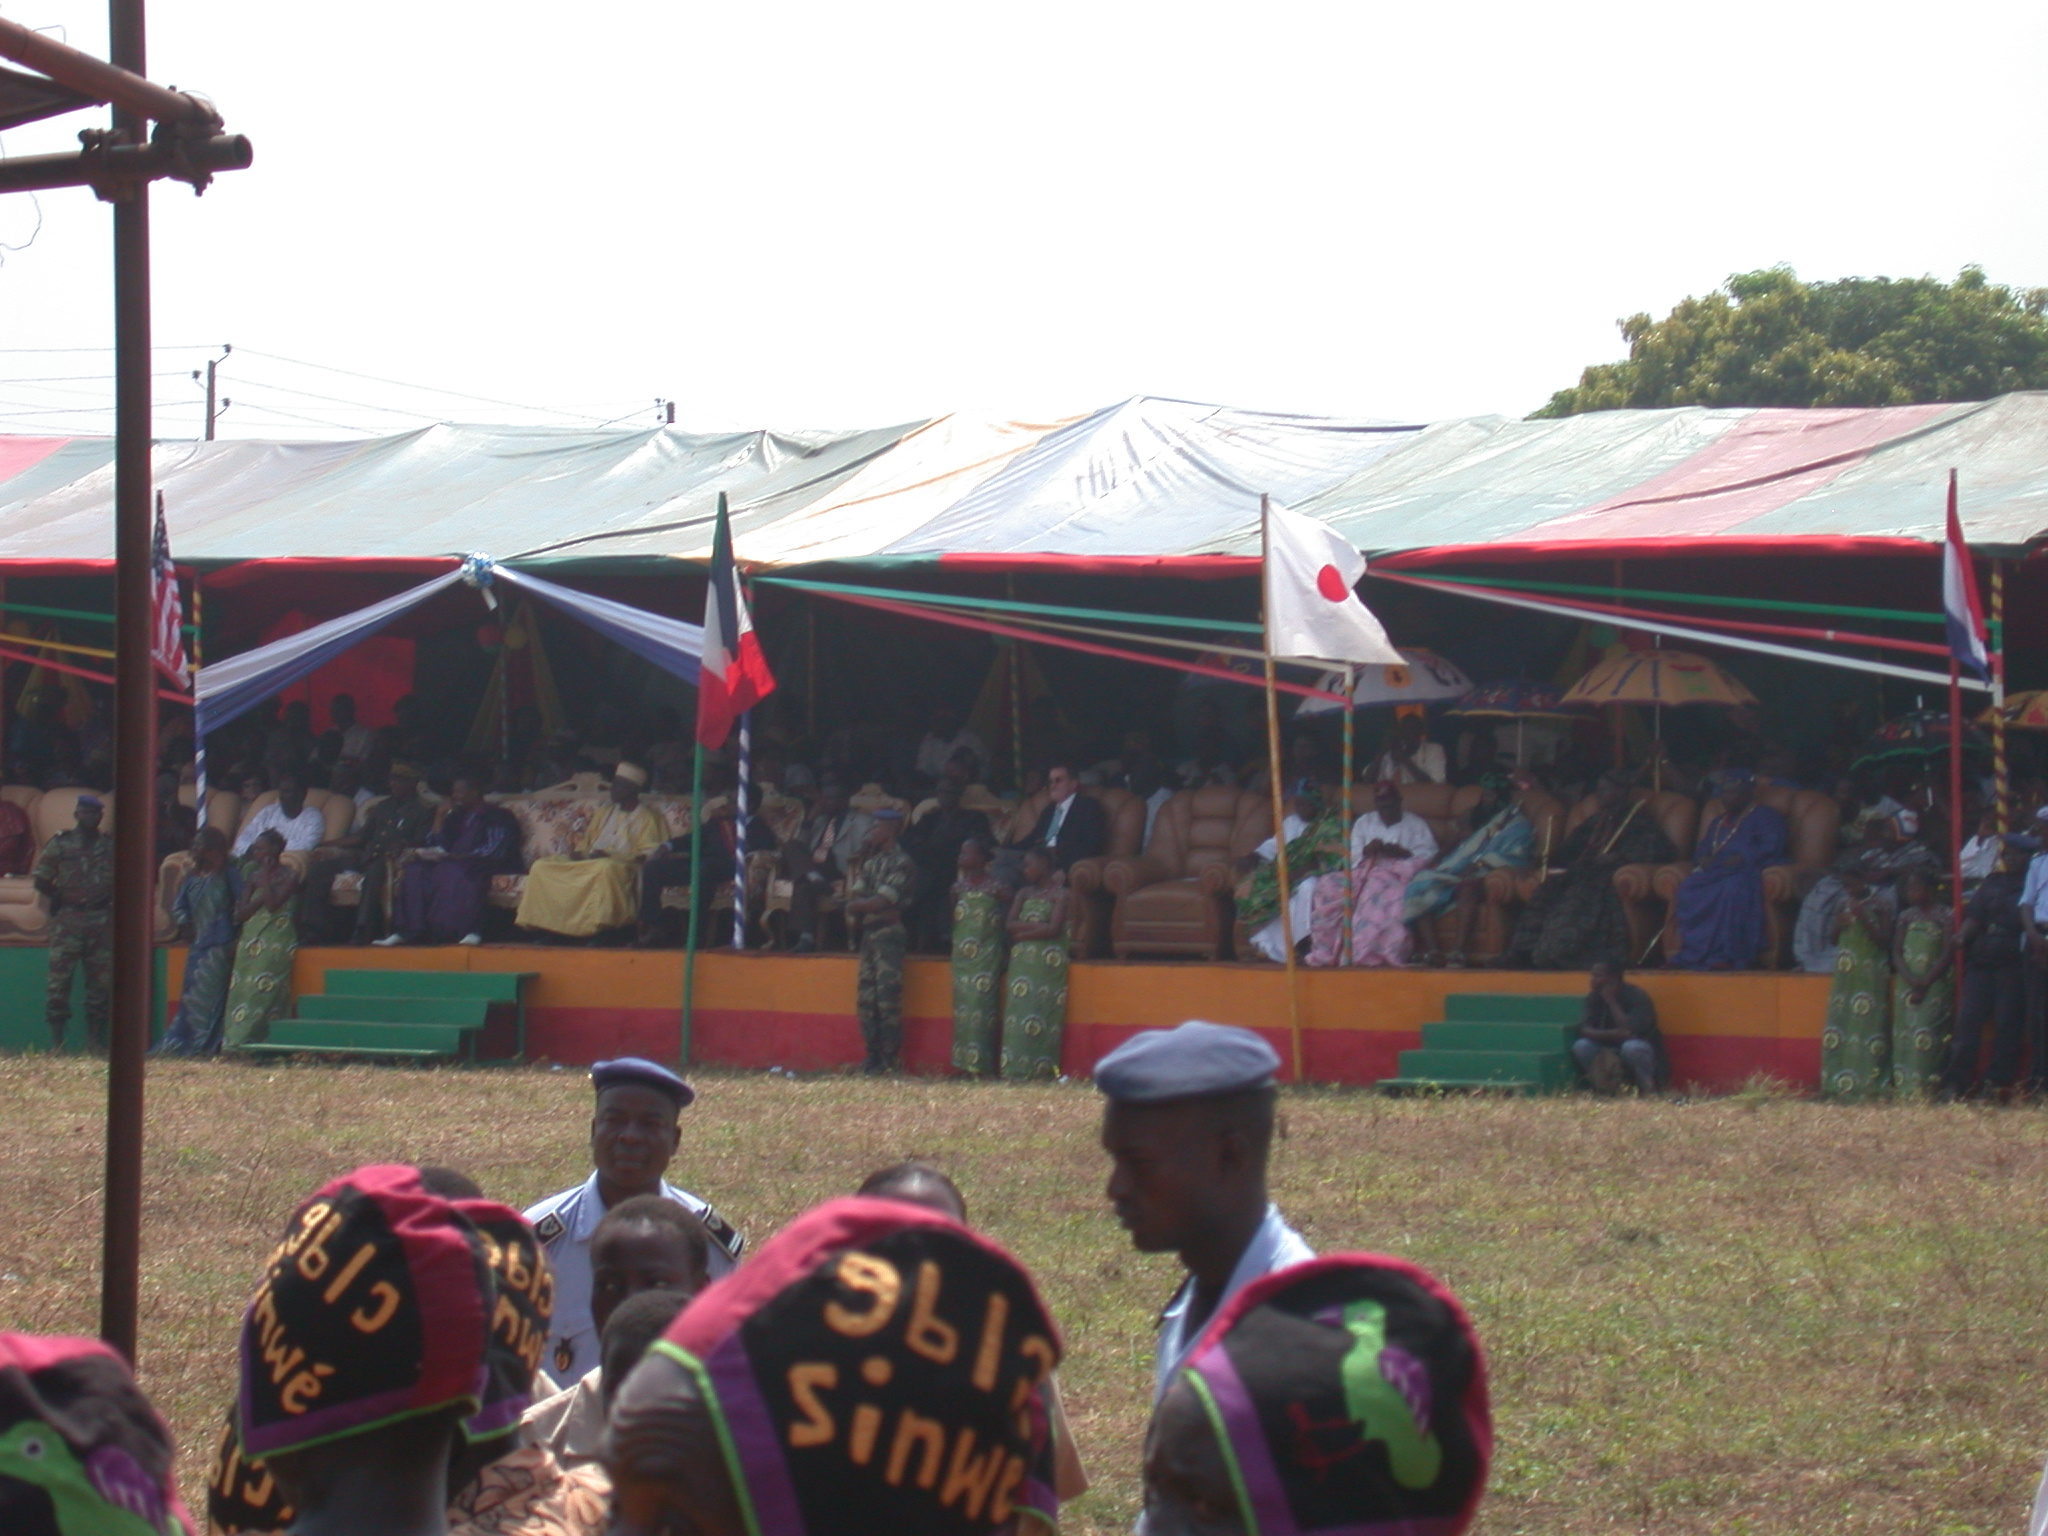 Bleachers for Officials, Danxome Festival Celebrations at Palace Grounds, Abomey History Museum, Abomey, Benin